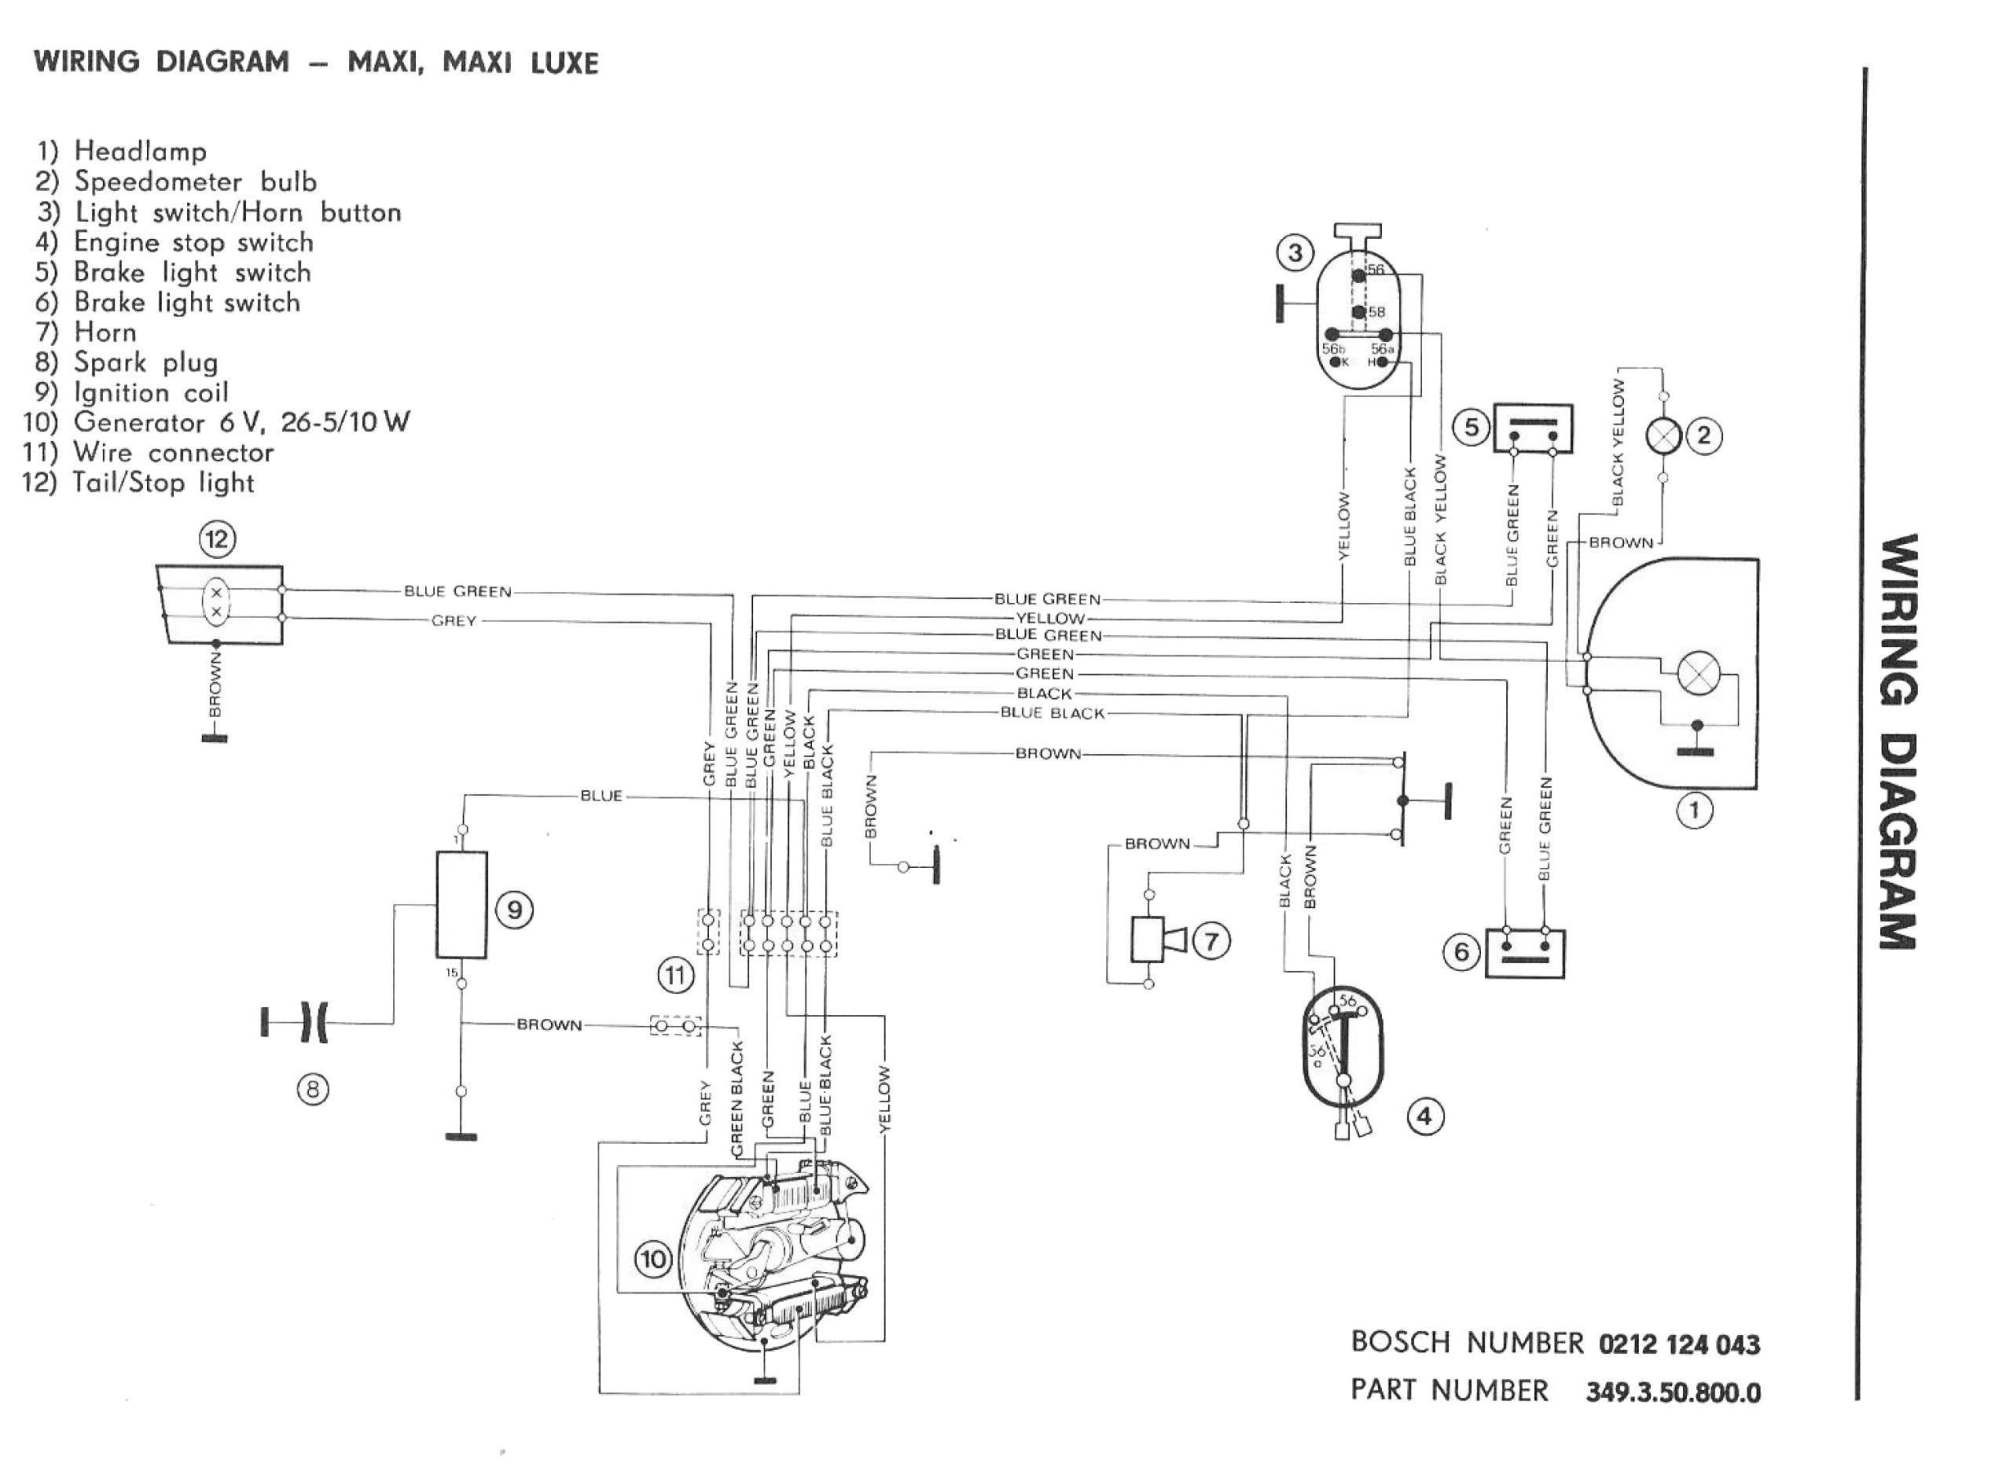 hight resolution of puch wiring diagram schematic wiring diagrams mercury wiring diagram puch moped wiring diagram schematic wiring diagrams